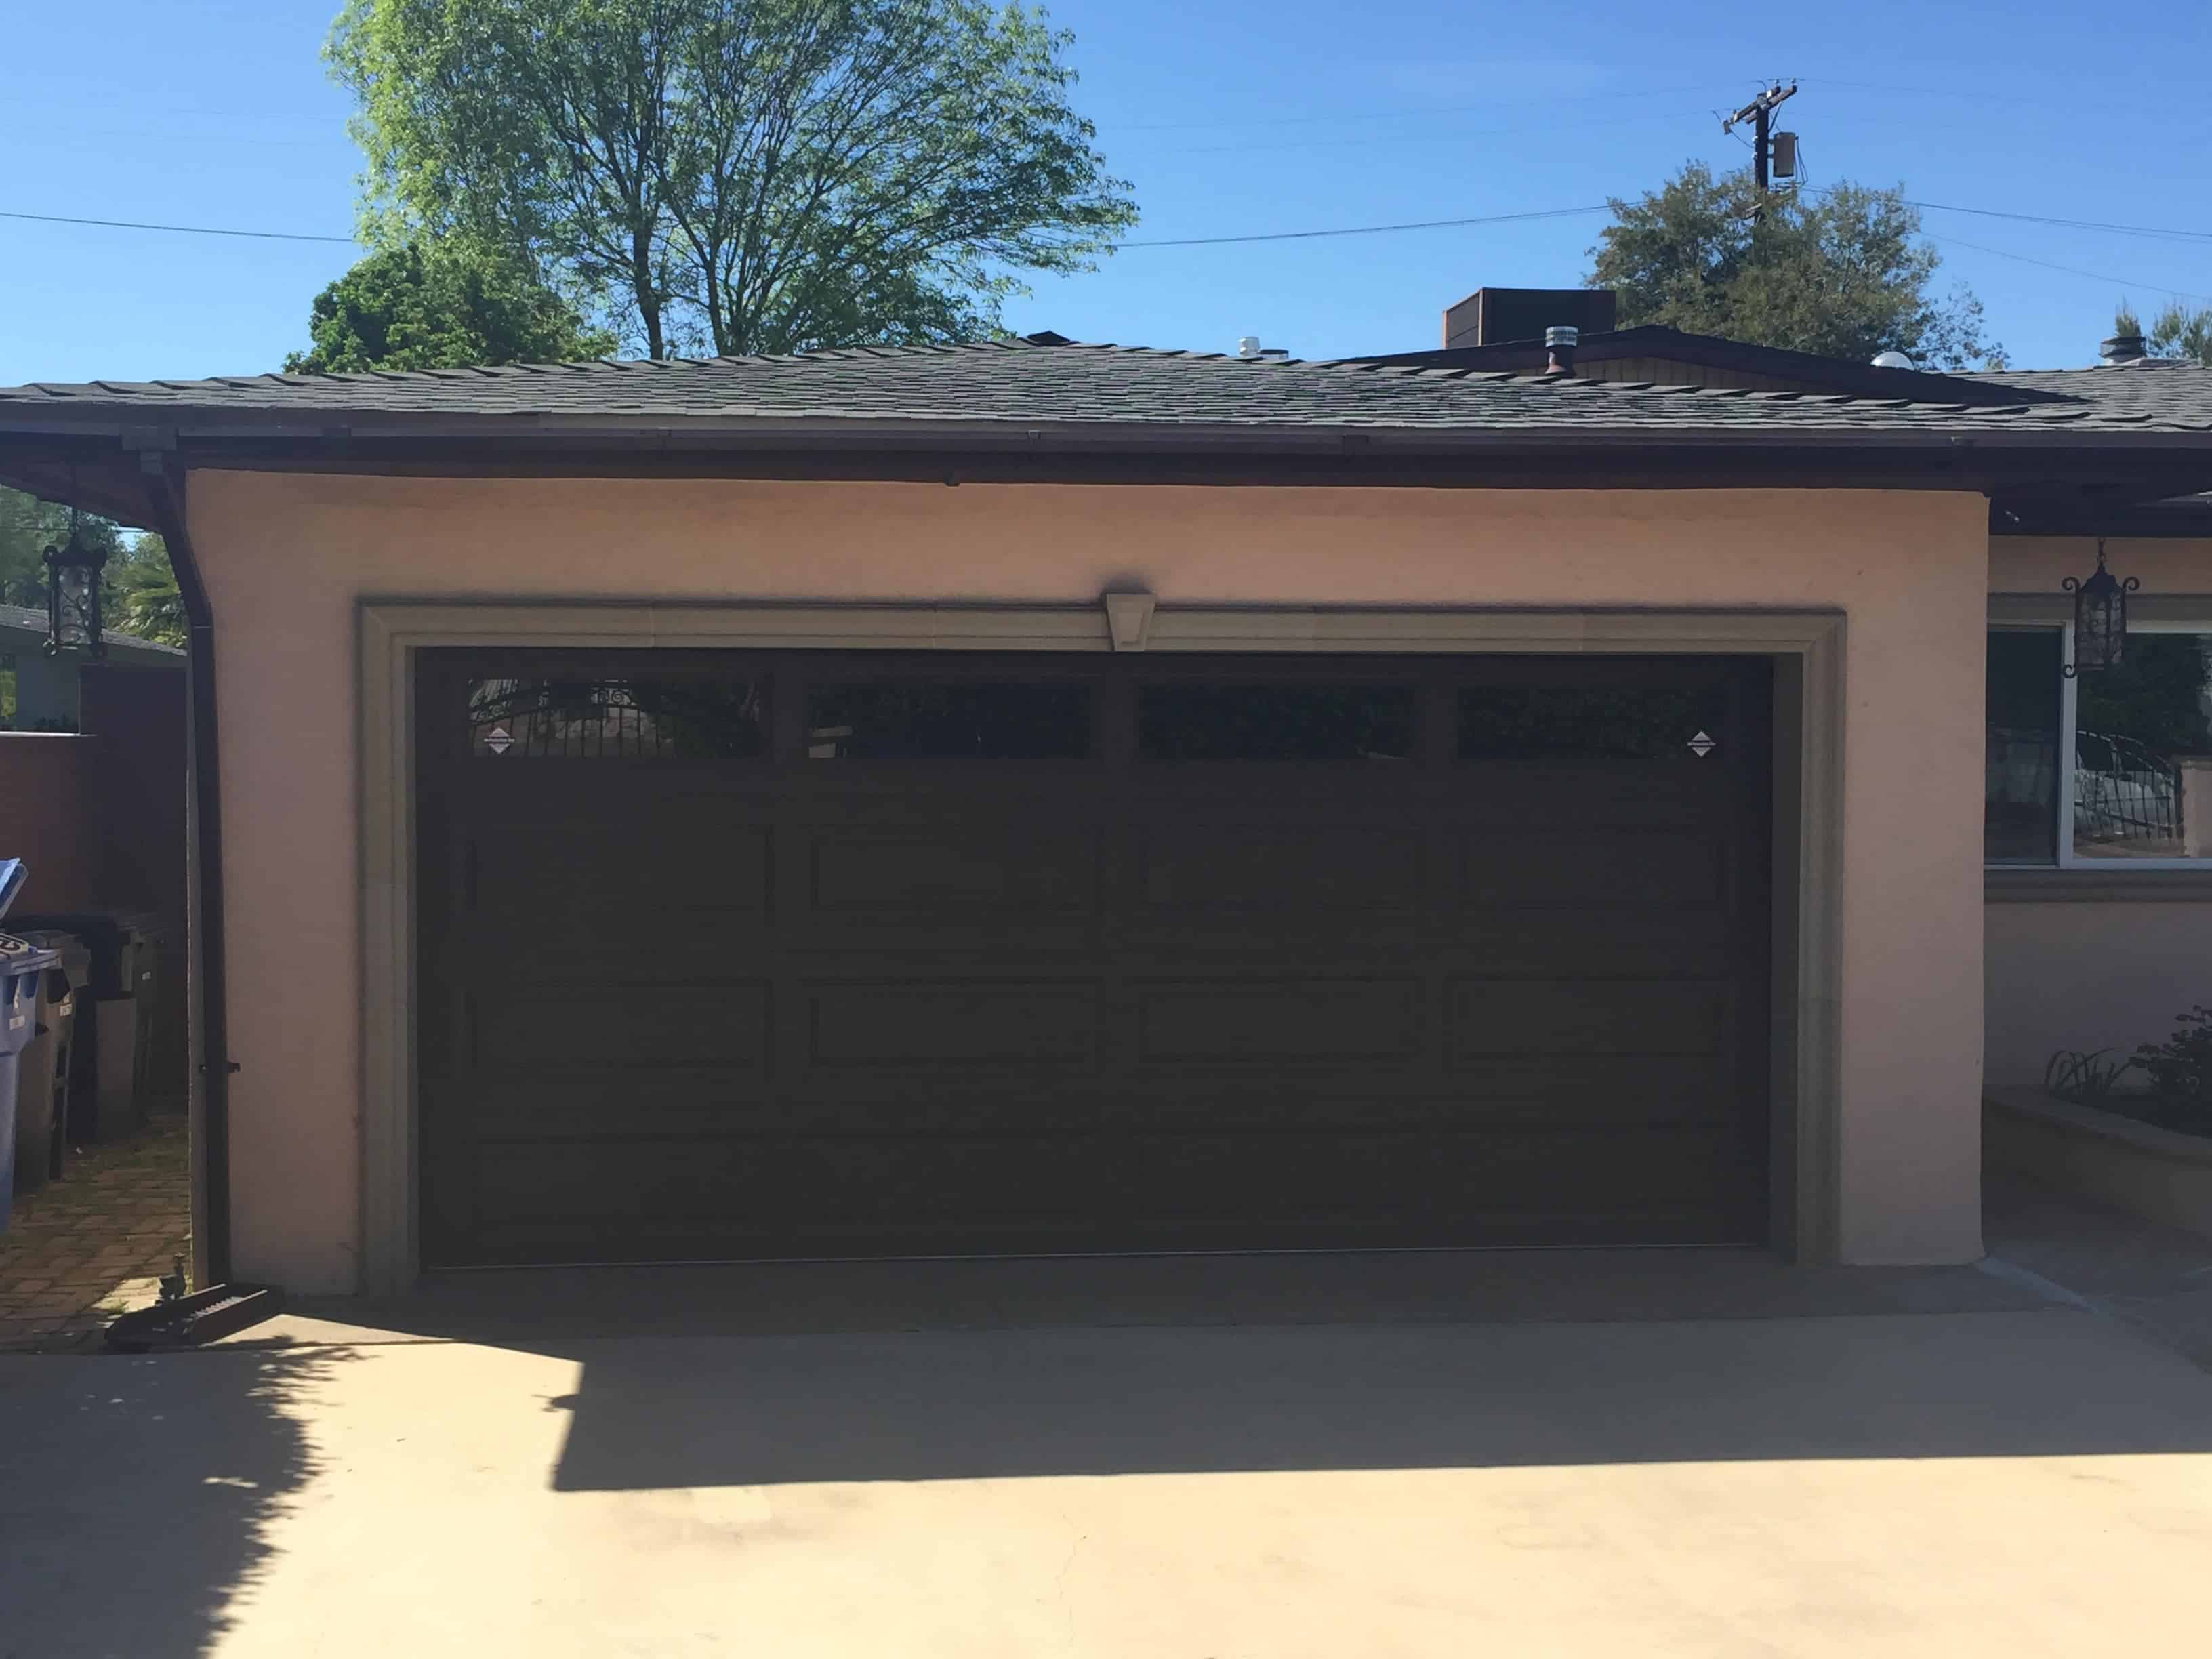 Acampo Garage door repair and replacement